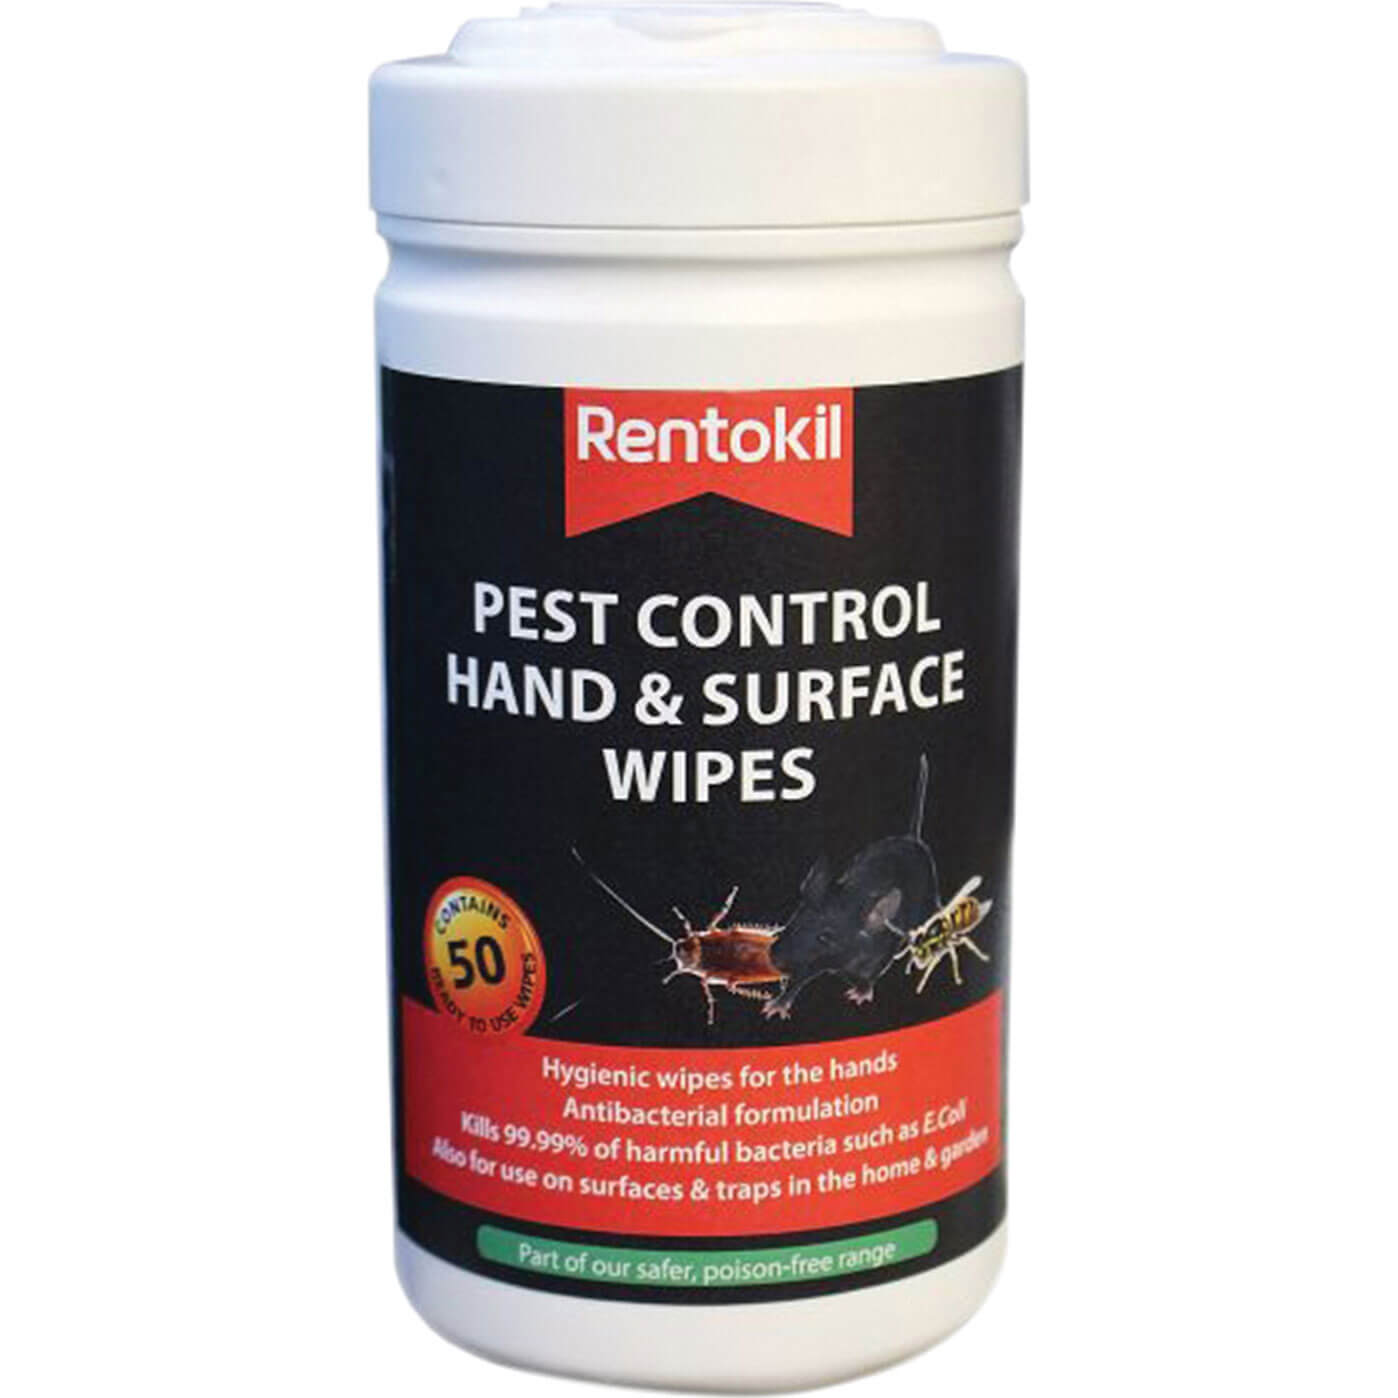 Image of Rentokil Pest Control Hand and Surface Wipes